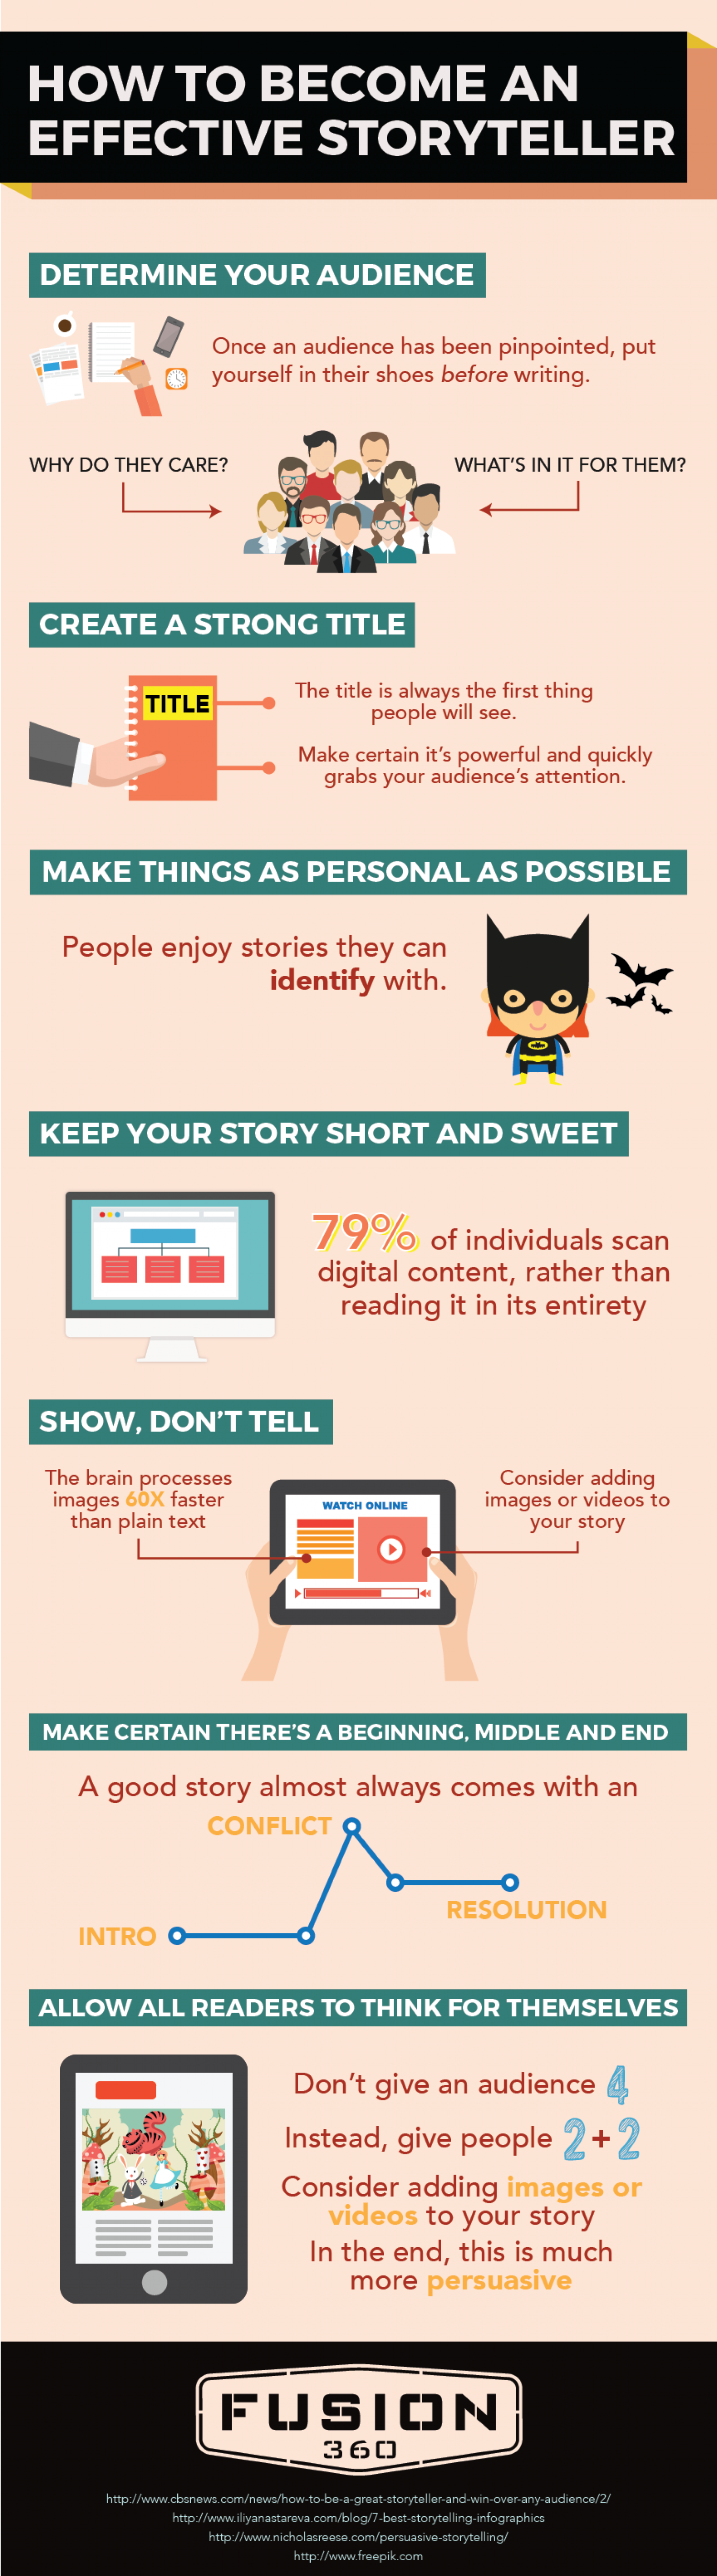 How To Become An Effective Storytellergraphic